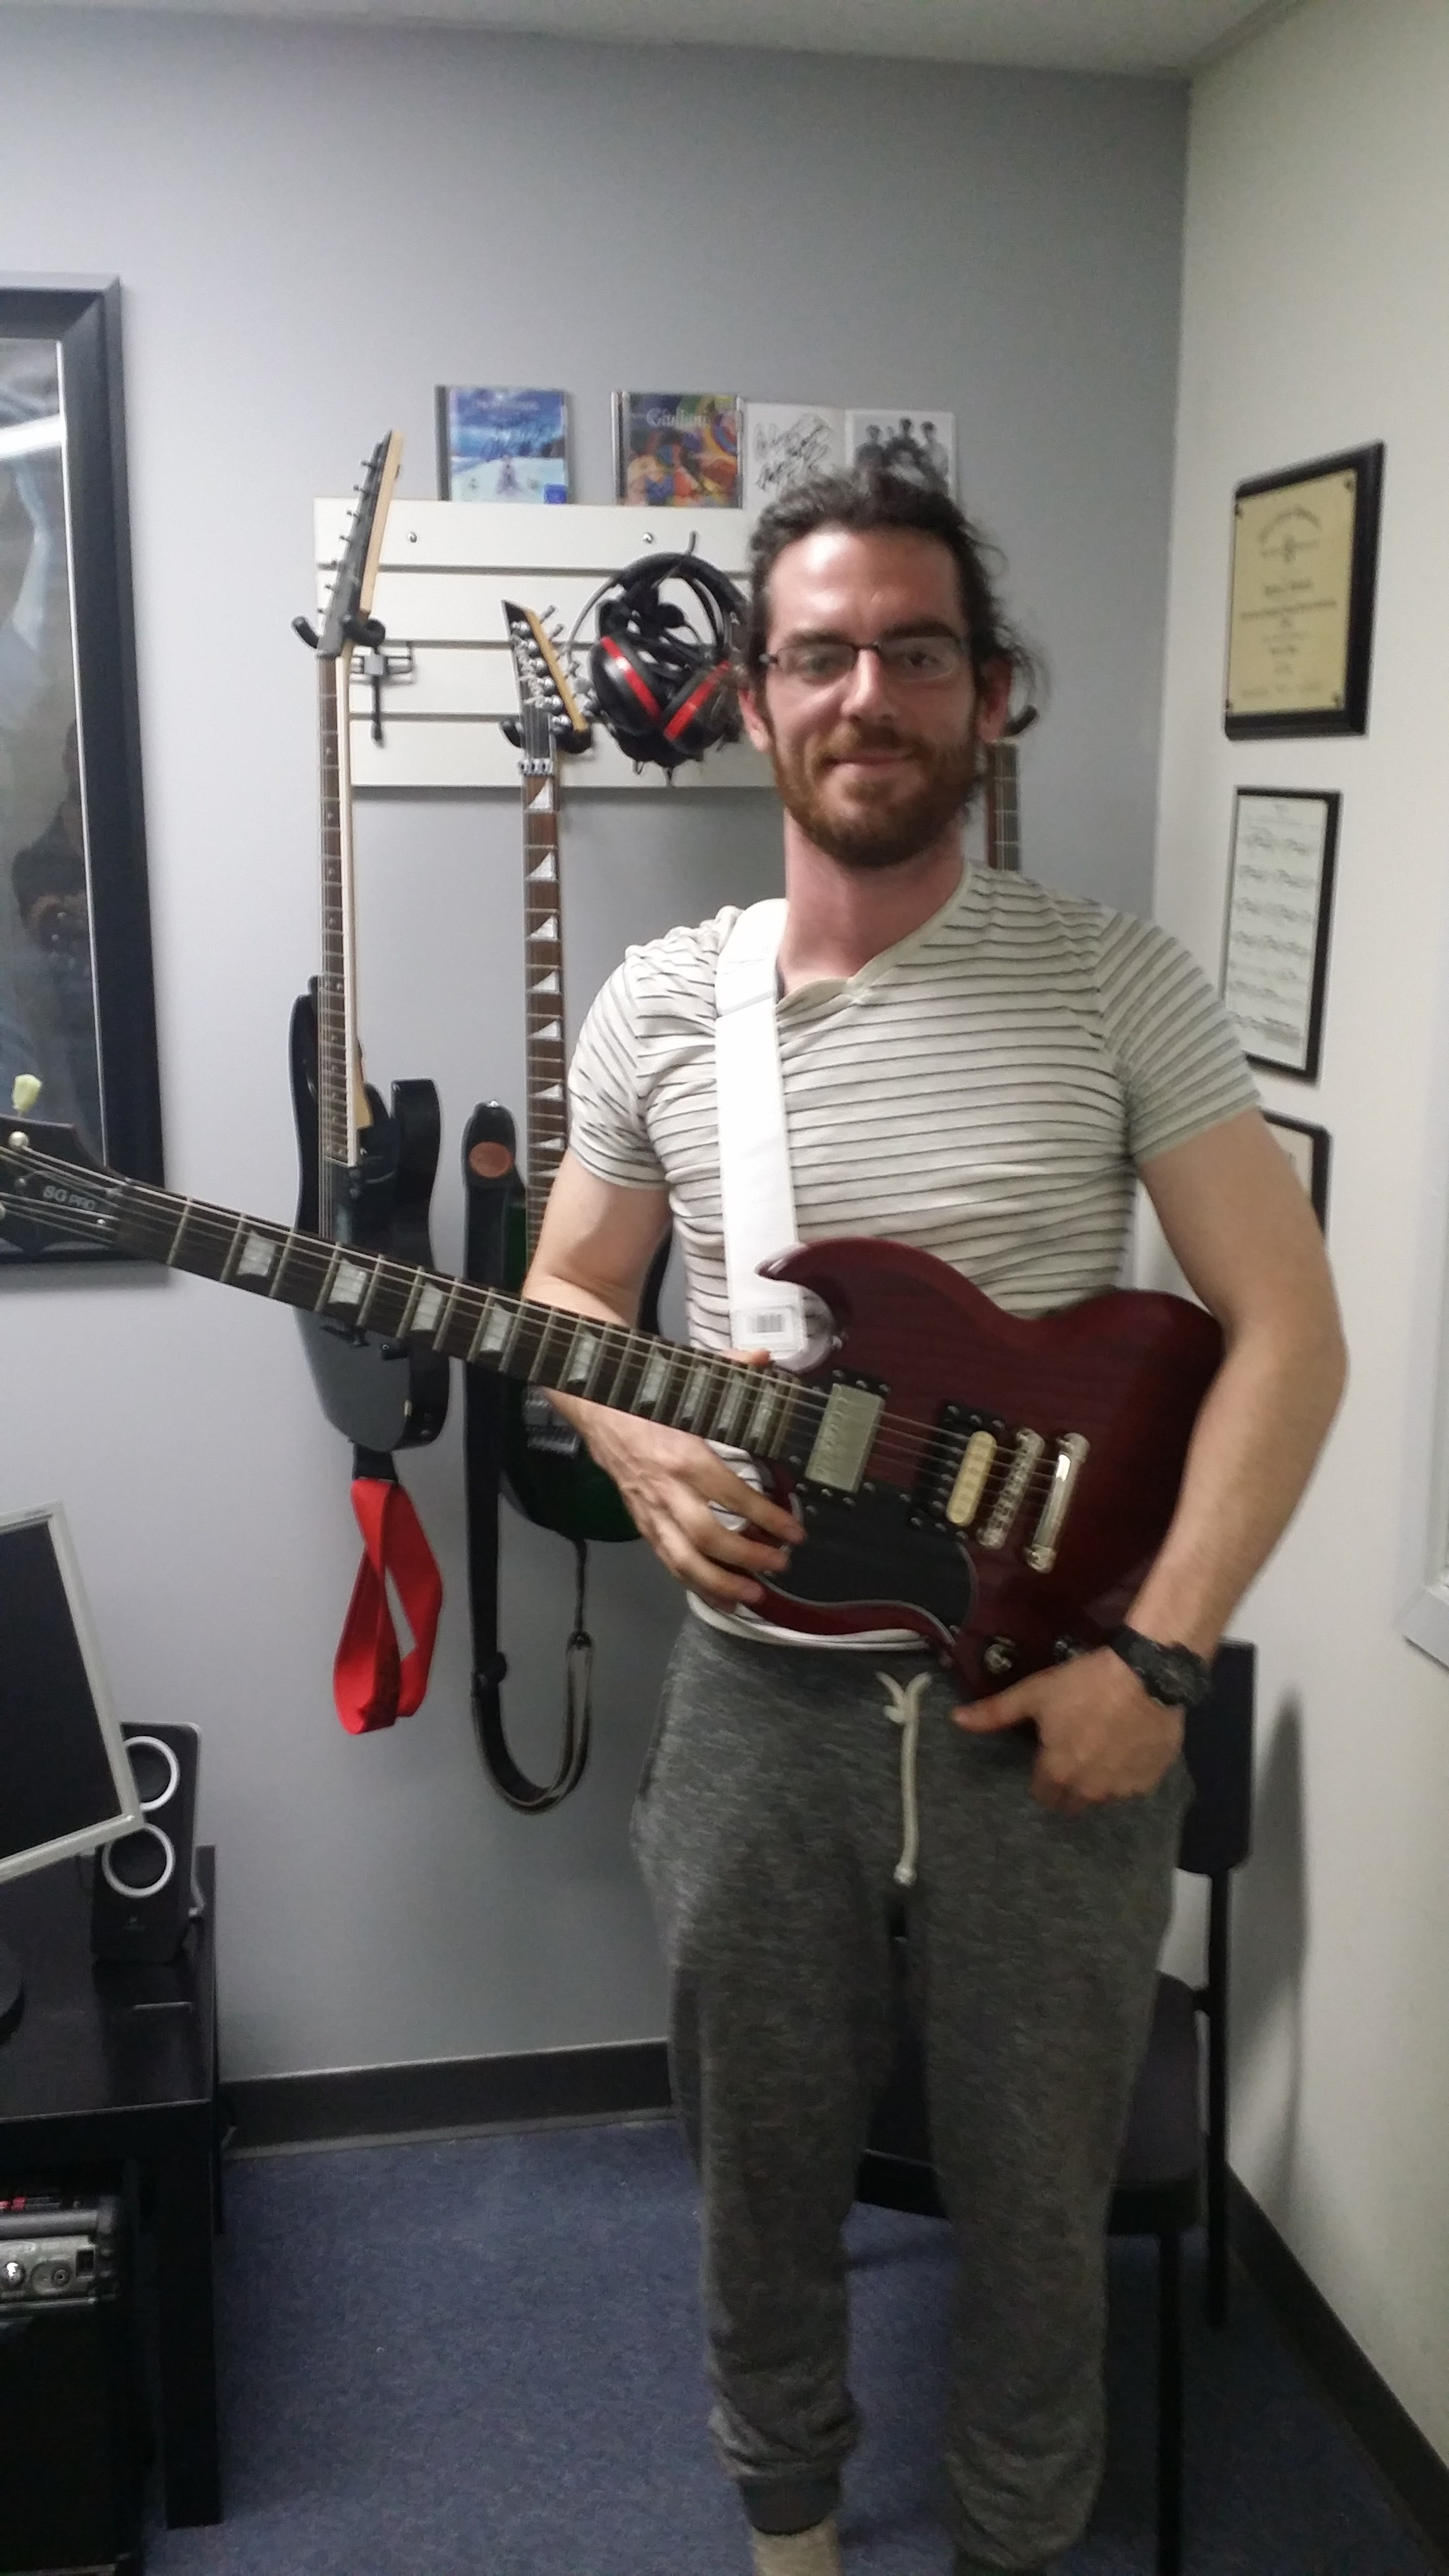 Nate earned his Rock Guitar Mastery System™ Rock Starter Level